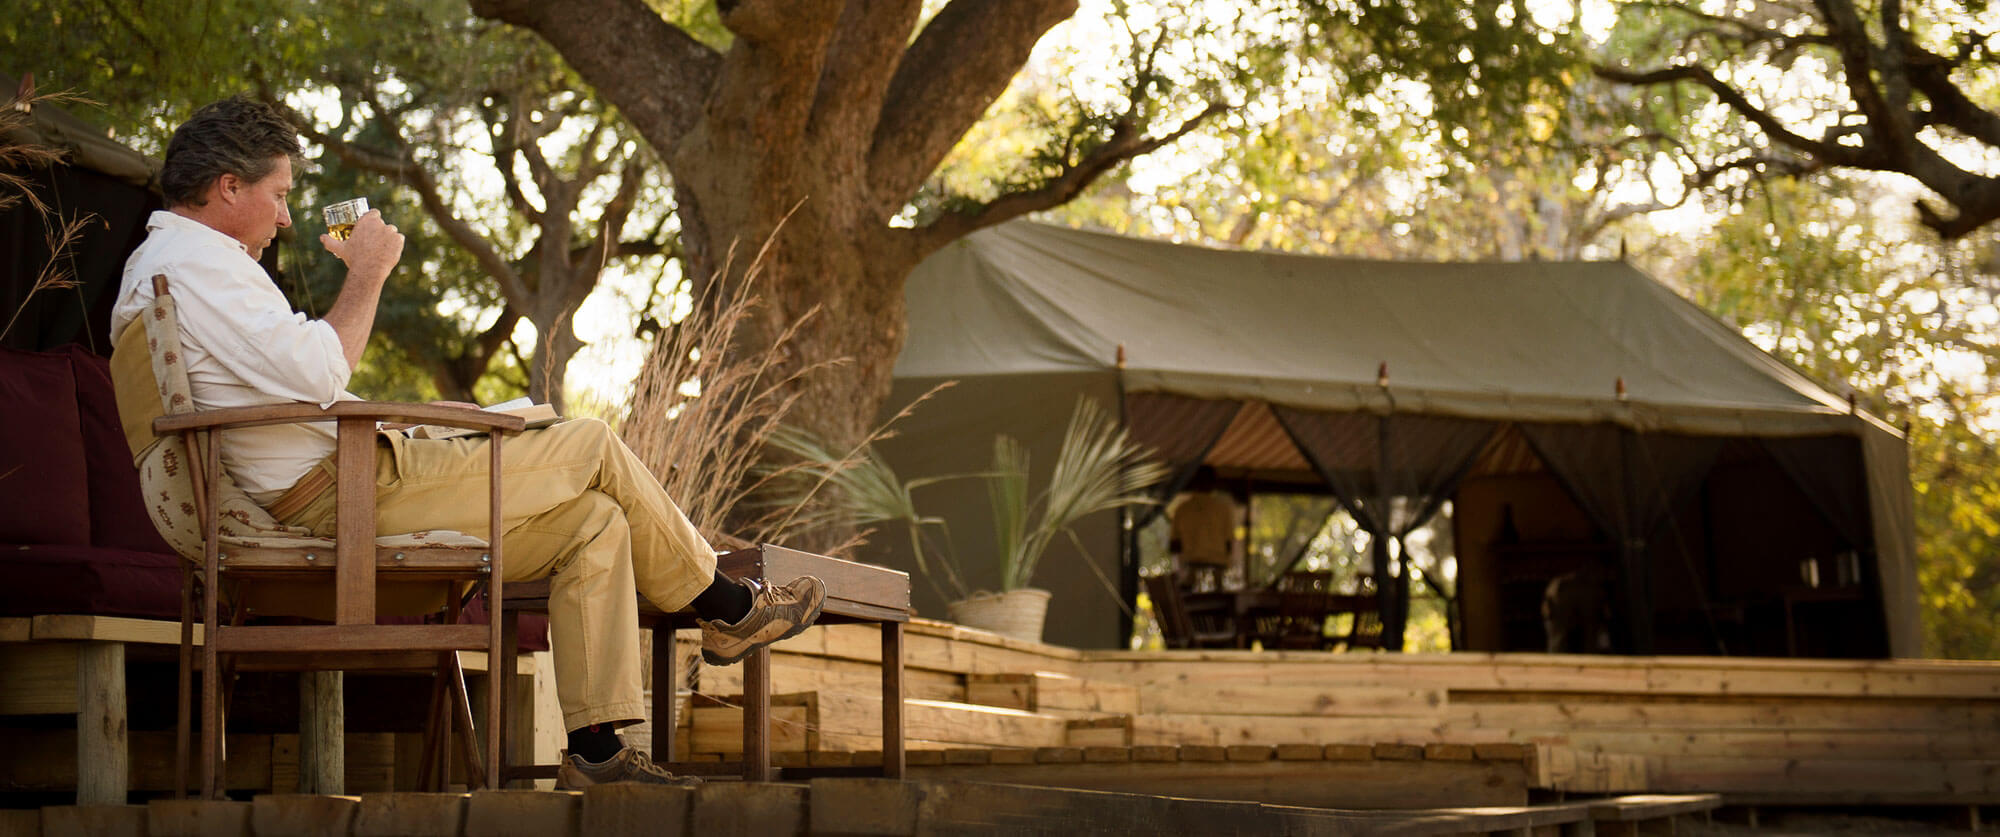 Lounging at Chada Katavi - Katavi National Park Safaris - Remote Tanzania Safari Adventure